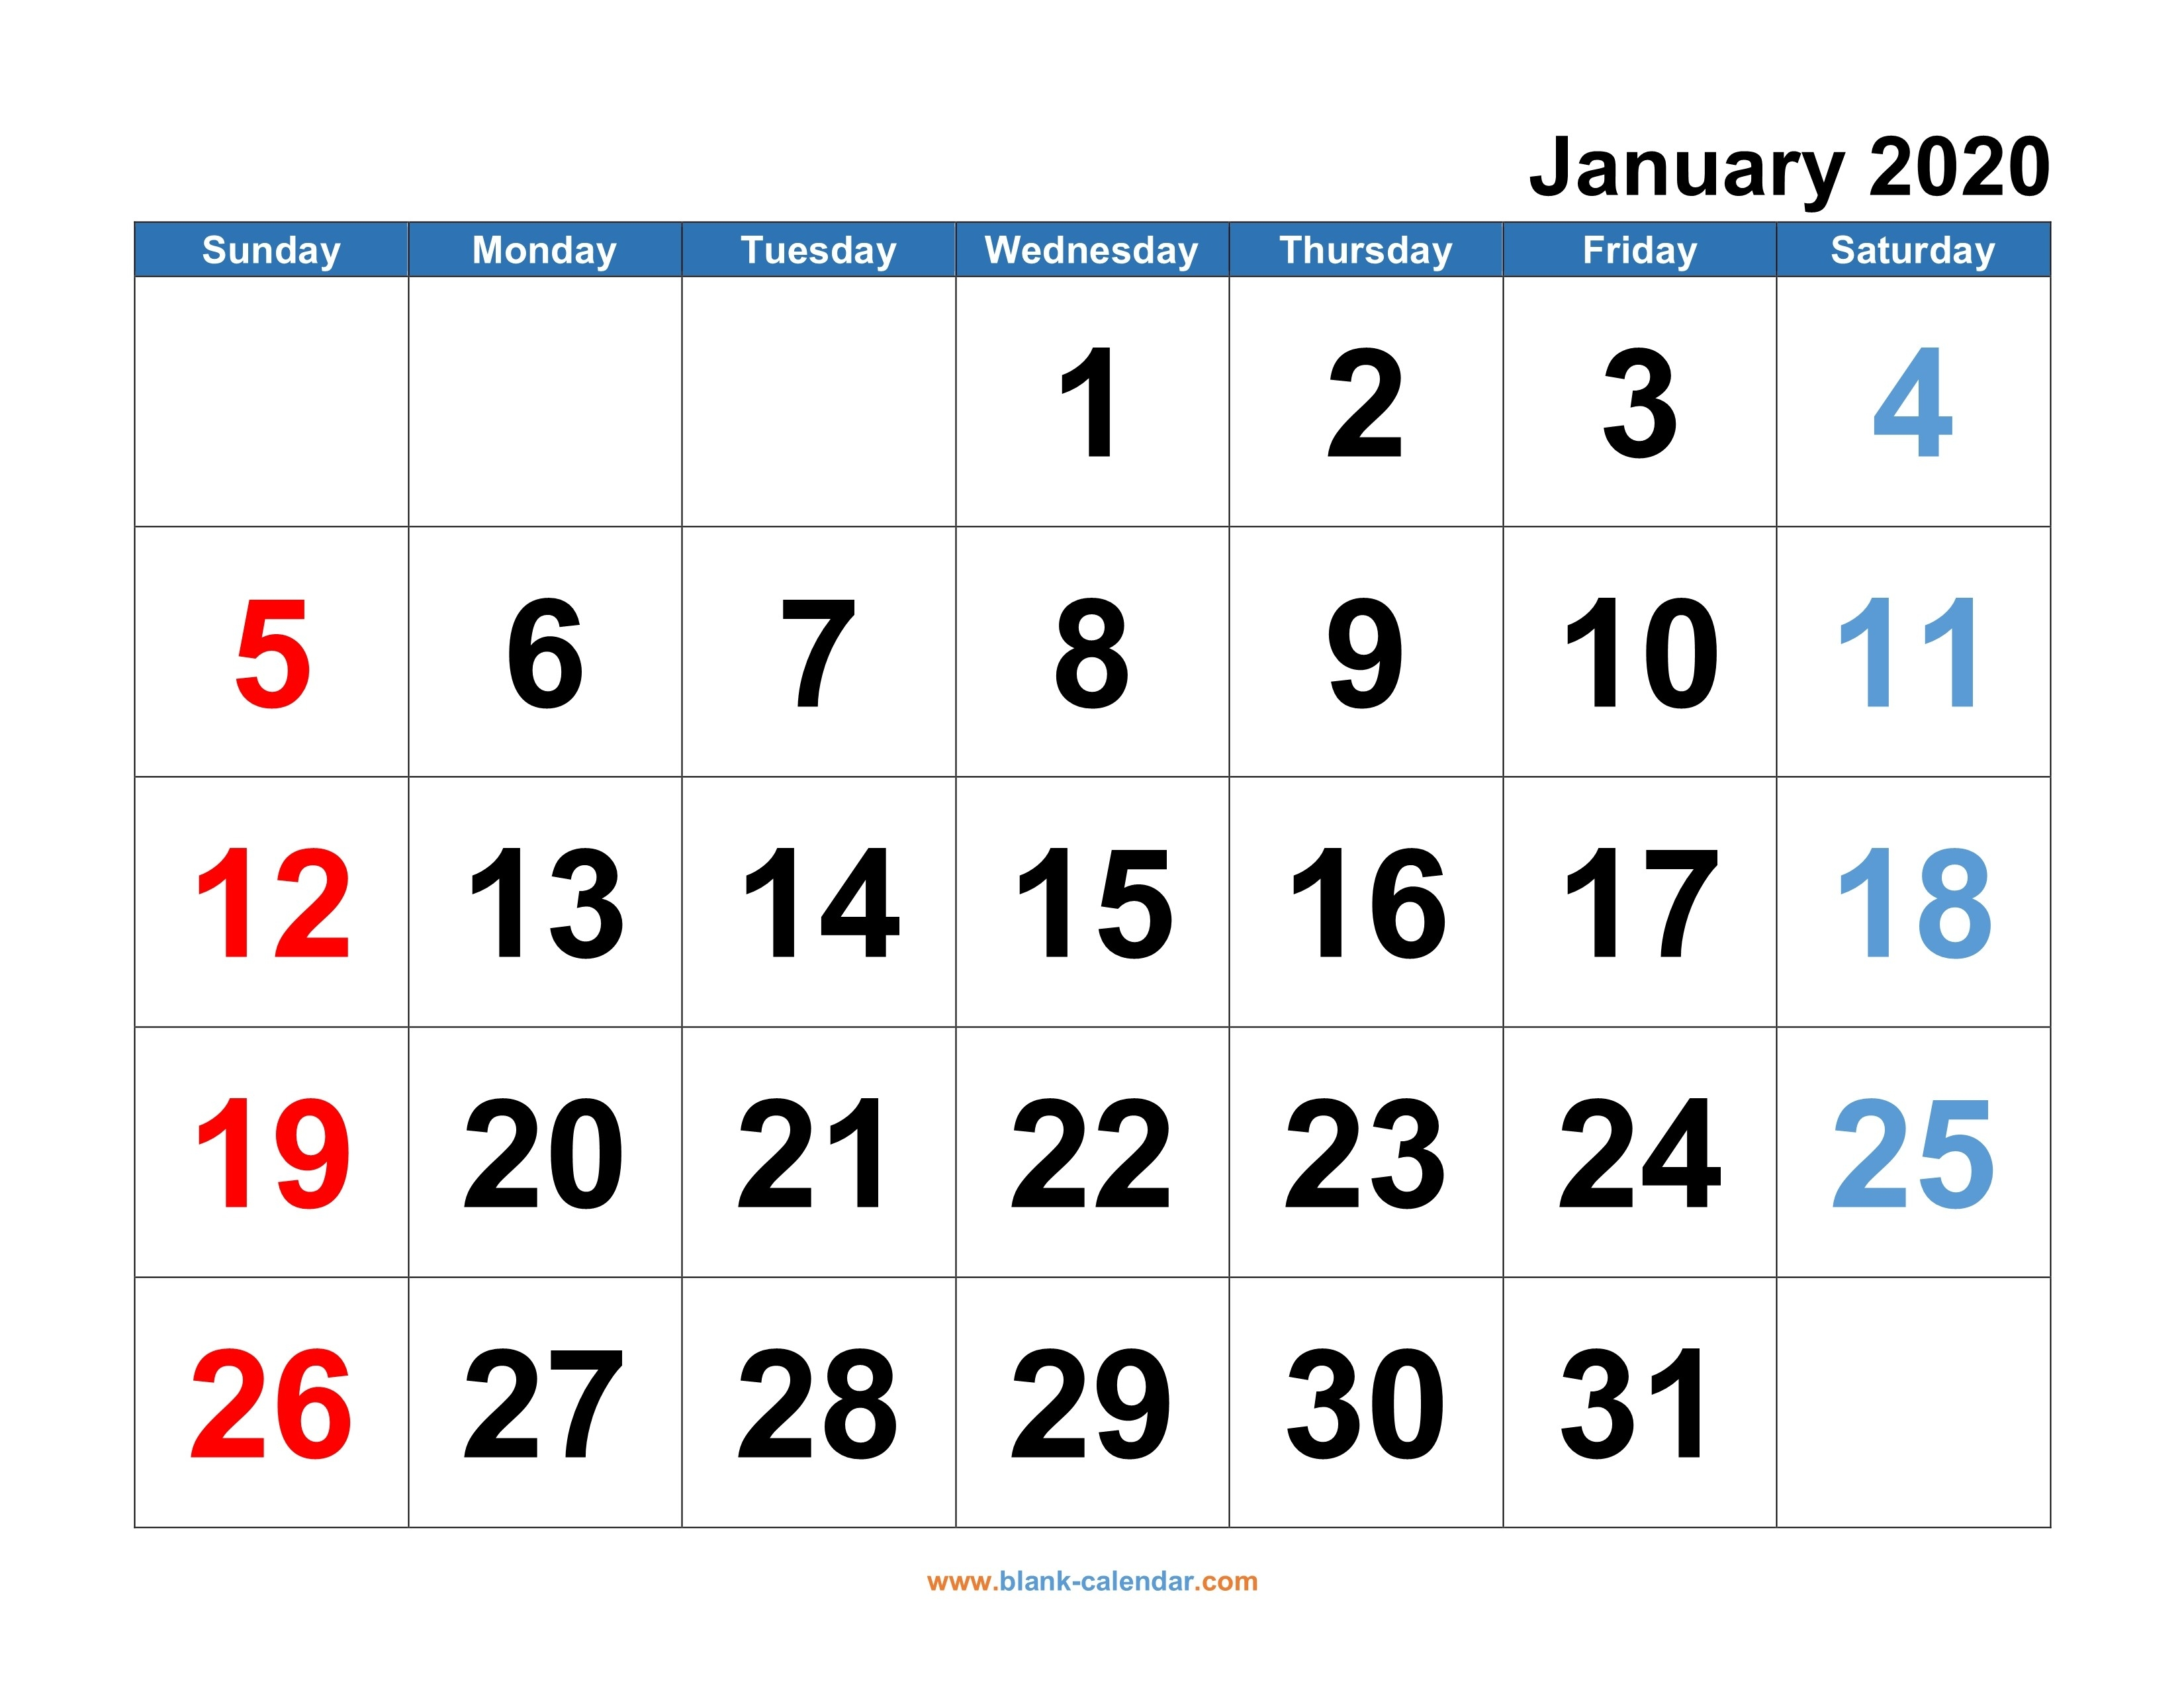 Monthly Calendar 2020 | Free Download, Editable And Printable-Printable Monthly Bill Pay Calendar 2020